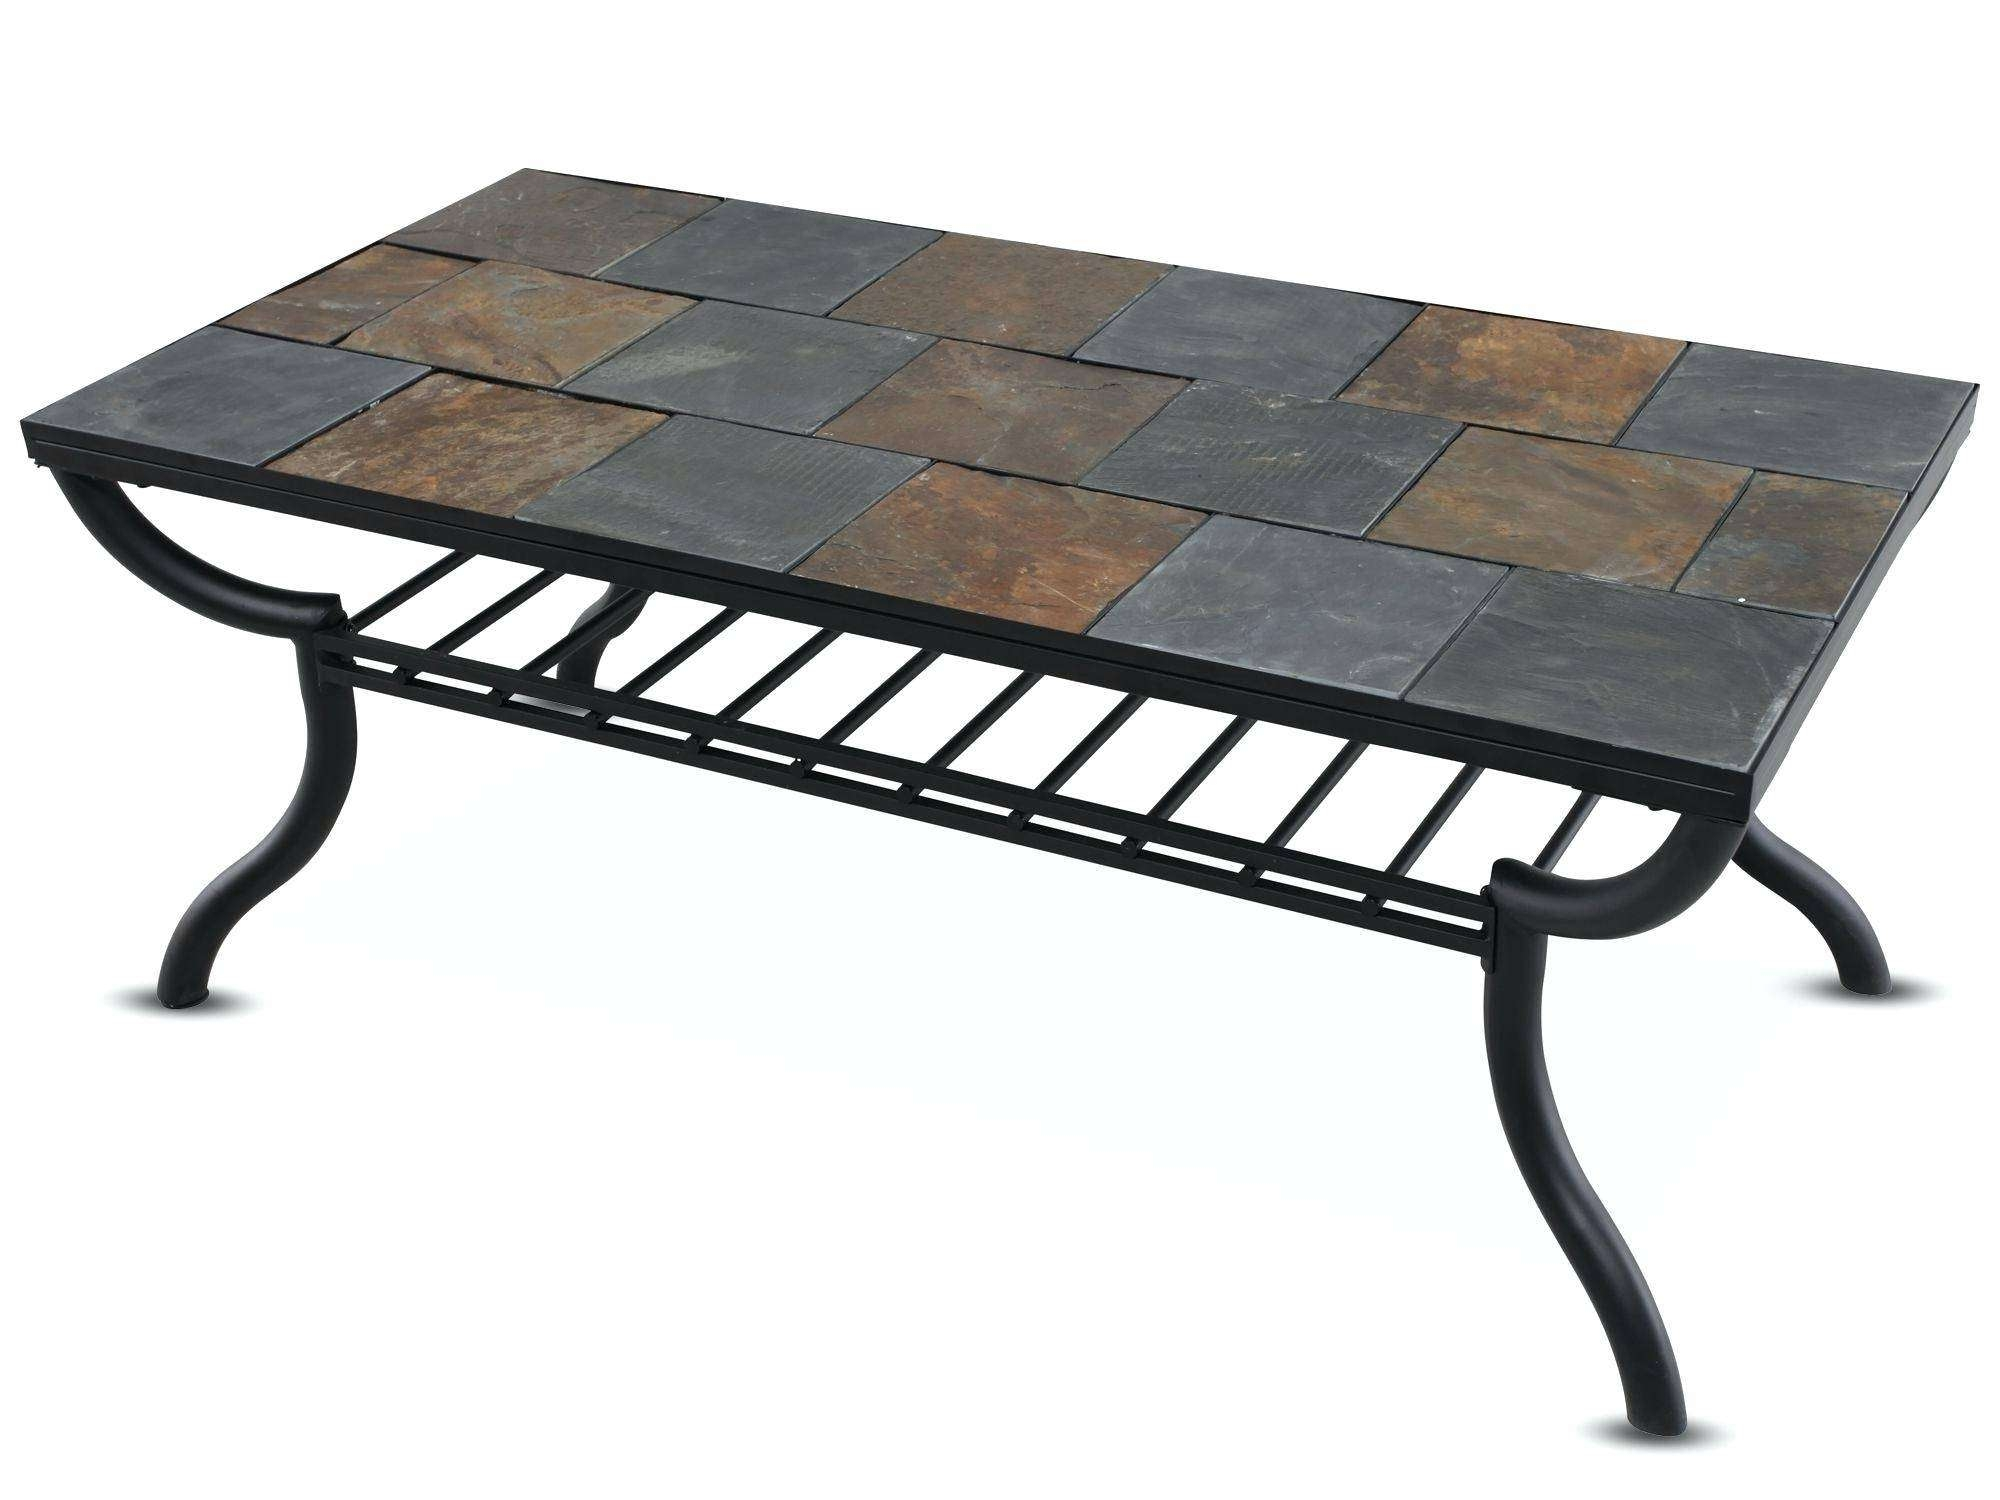 Collection Waverly Lift Top Coffee Table – Mediasupload In Newest Waverly Lift Top Coffee Tables (View 7 of 20)